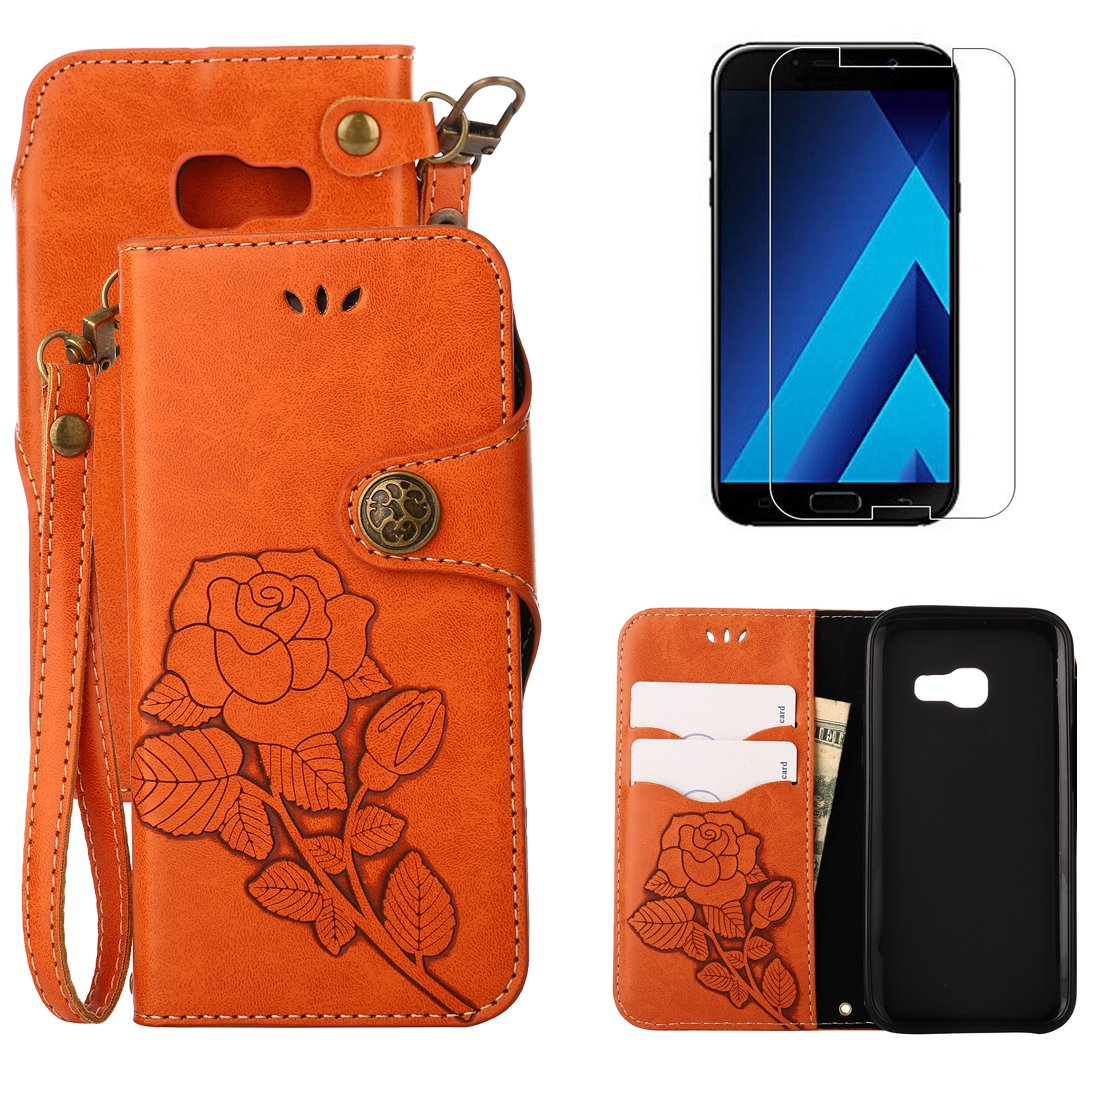 For Samsung Galaxy A5 2017 A520 Wallet Case with Screen Protector , OYIME [ Elegant Vintage Rose ] Classic Design Flip Bookstyle Leather Holster with Wrist Lanyard Kickstand Magnetic Card Slots Function Full Body Protective Cover - Black